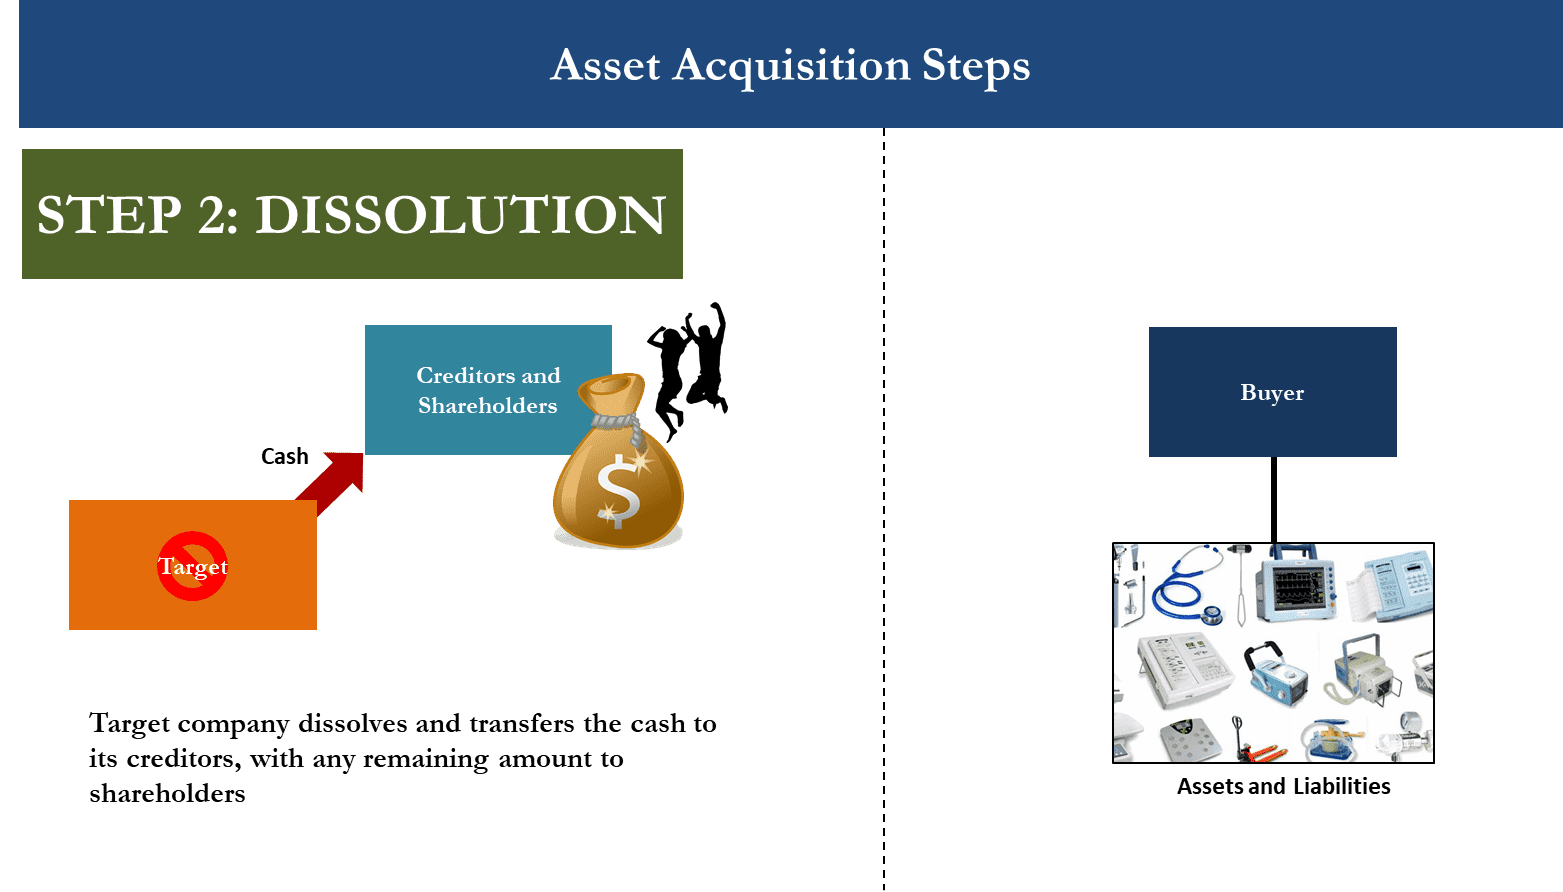 M&A Asset Acquisition Diagram showing Step 2 when Target company dissolves and distributes to shareholders and creditors